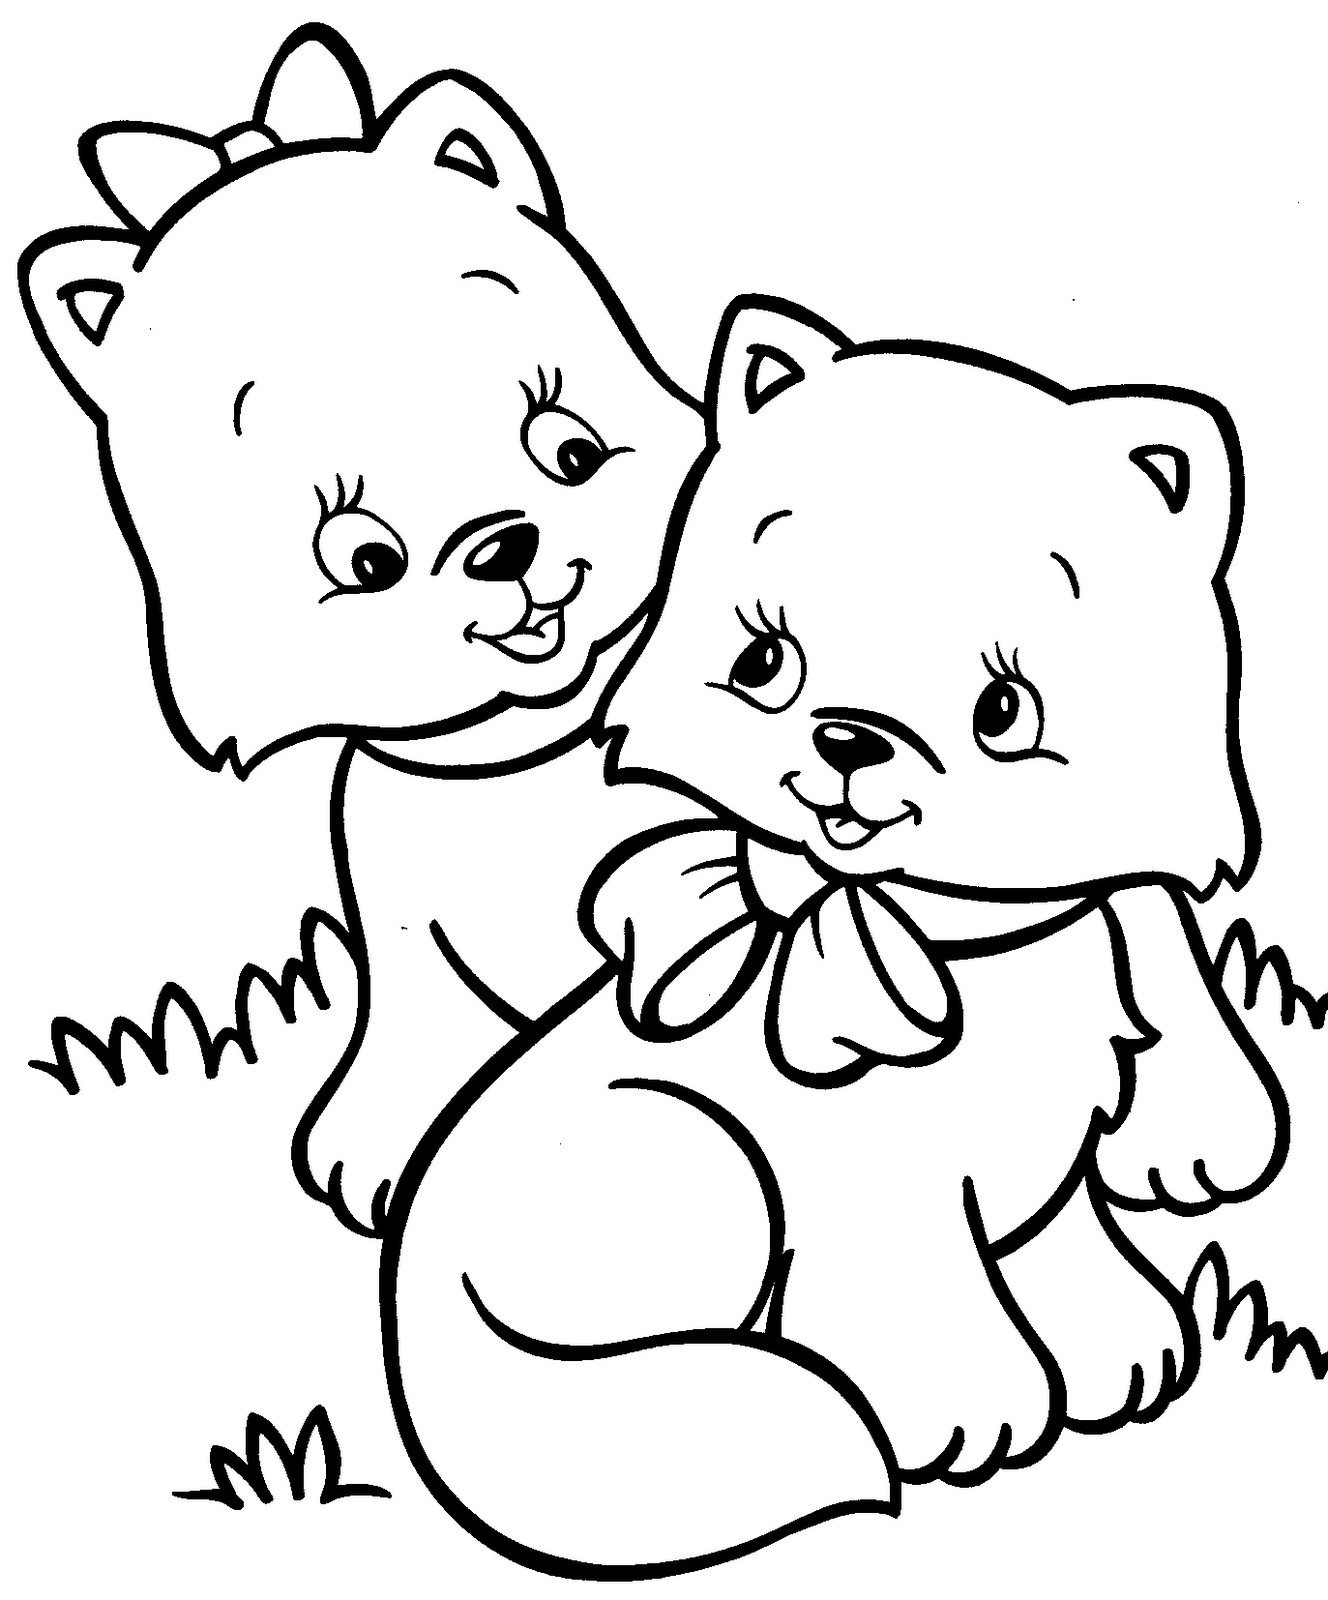 kitty cat coloring pages kitten coloring pages best coloring pages for kids kitty coloring cat pages